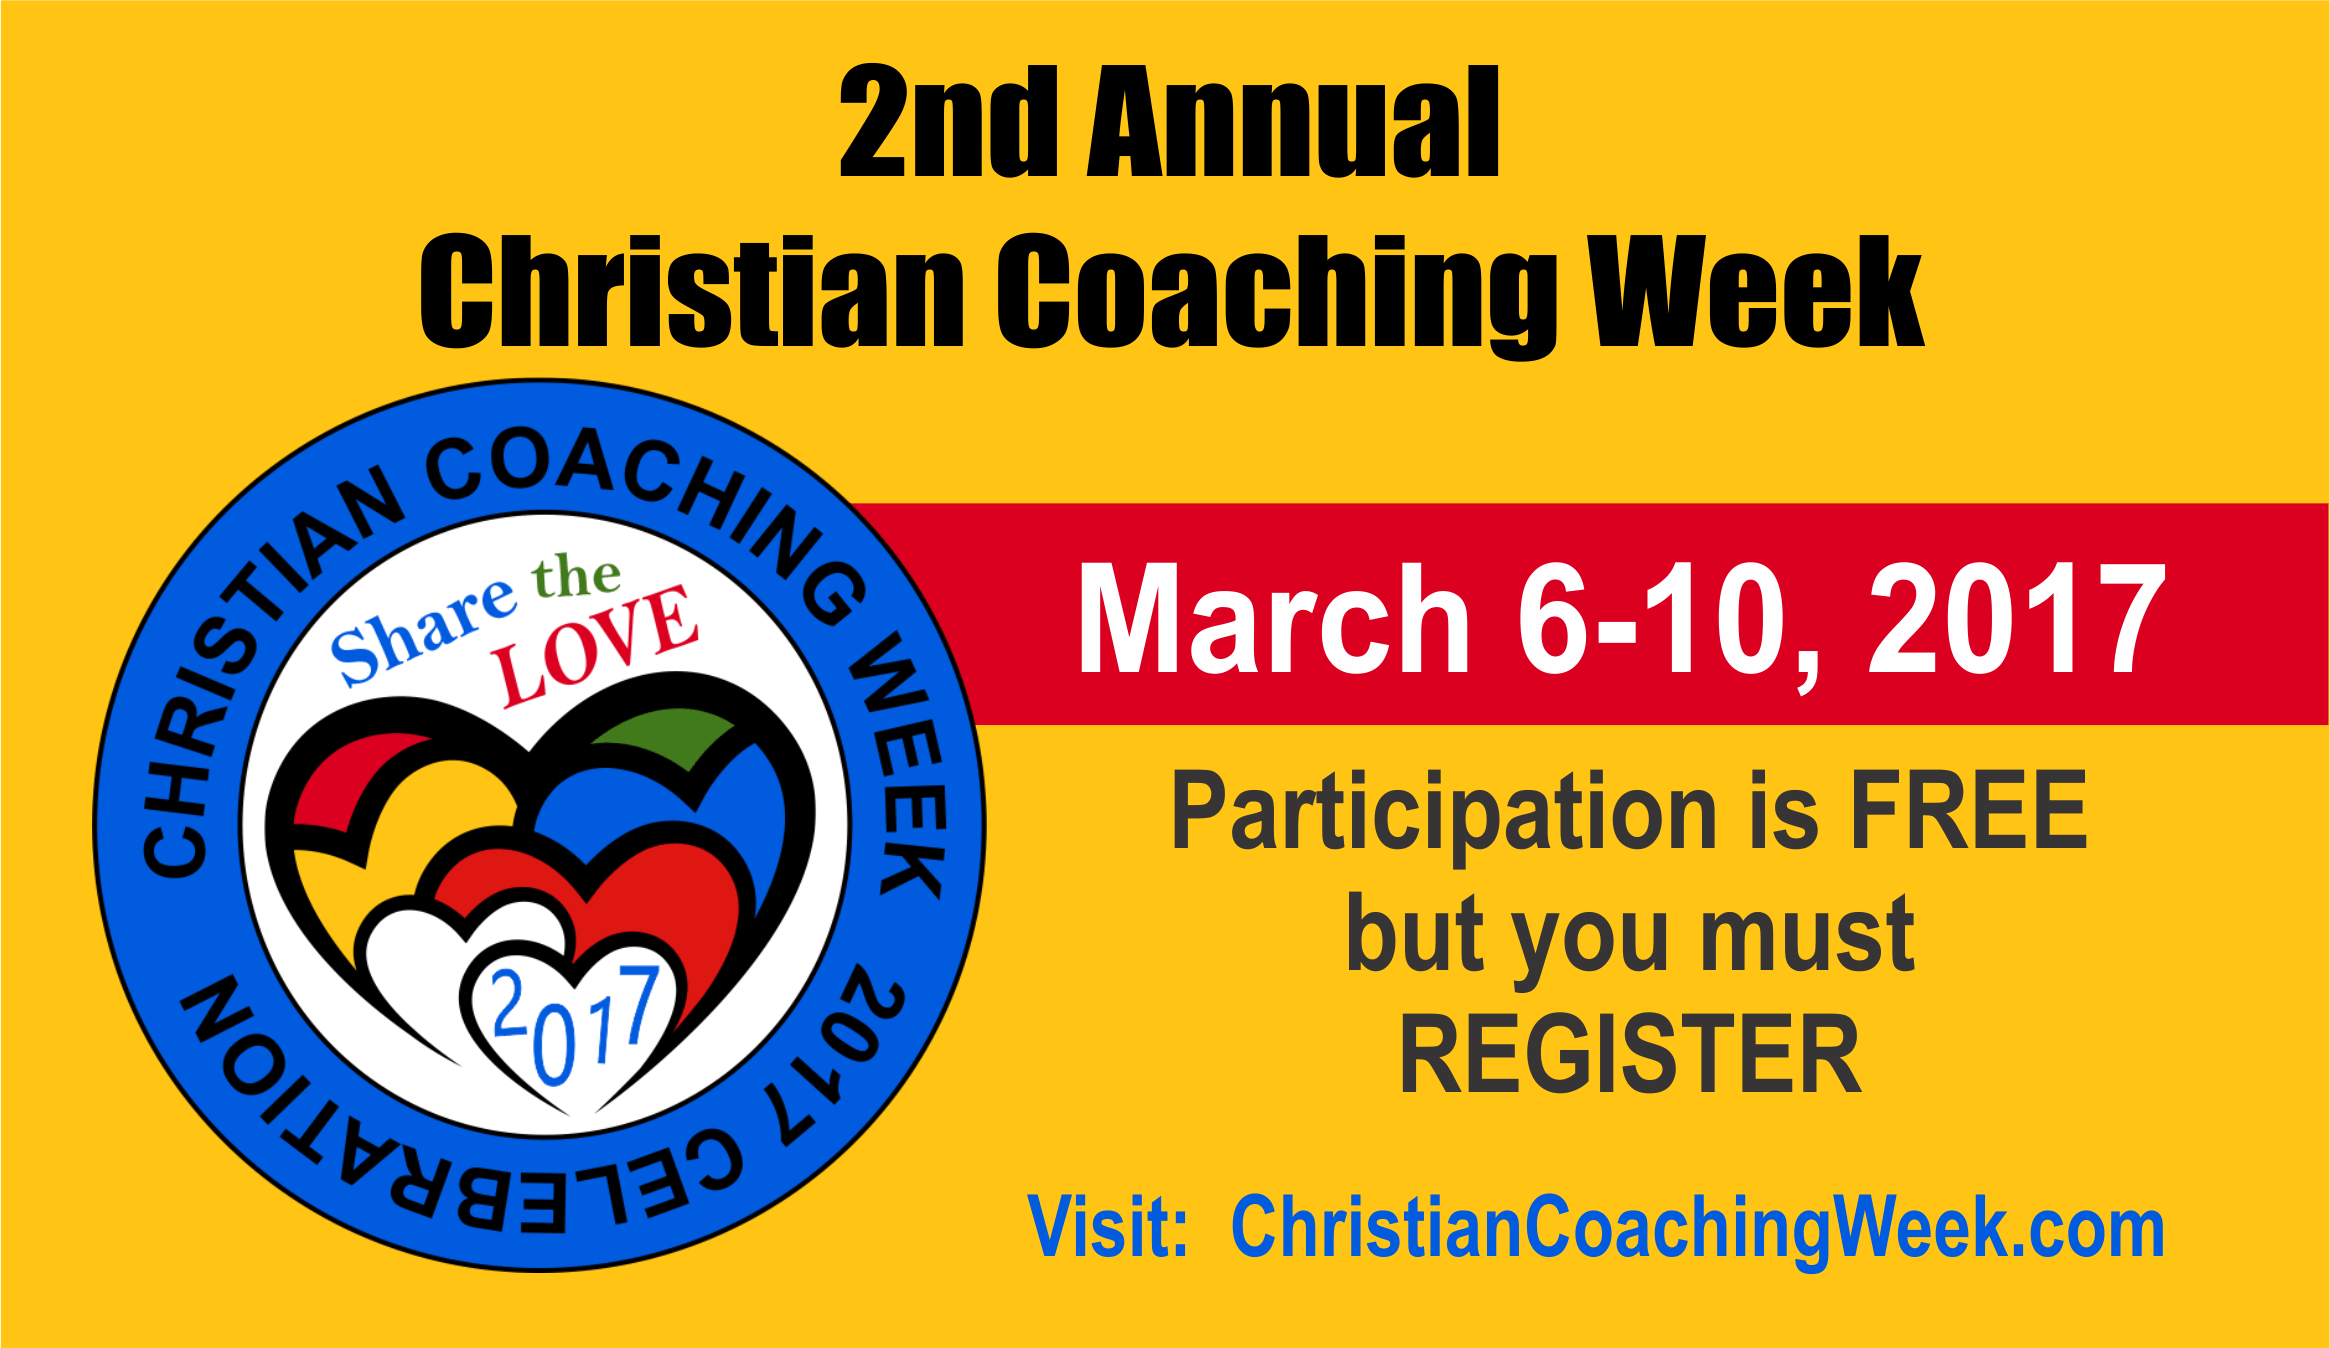 second annual Christian coaching week - participate free http://pccca.org